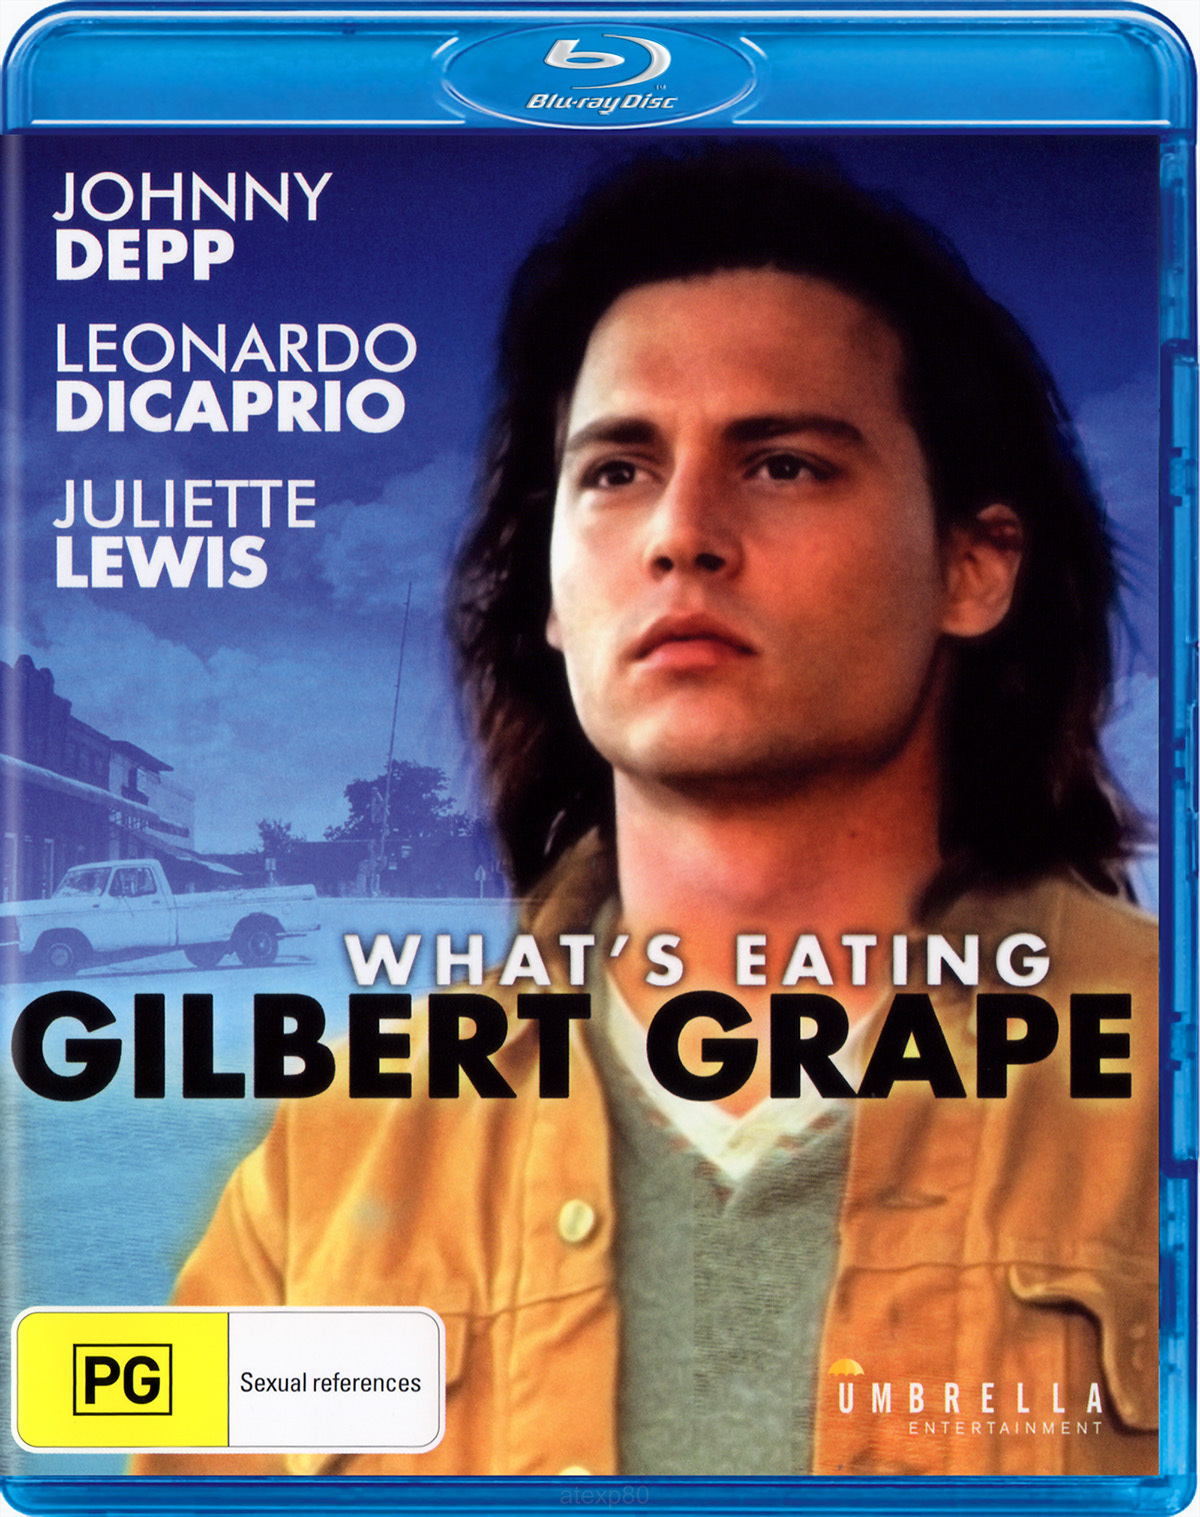 Whats Eating Gilbert Grape Quotes. QuotesGram